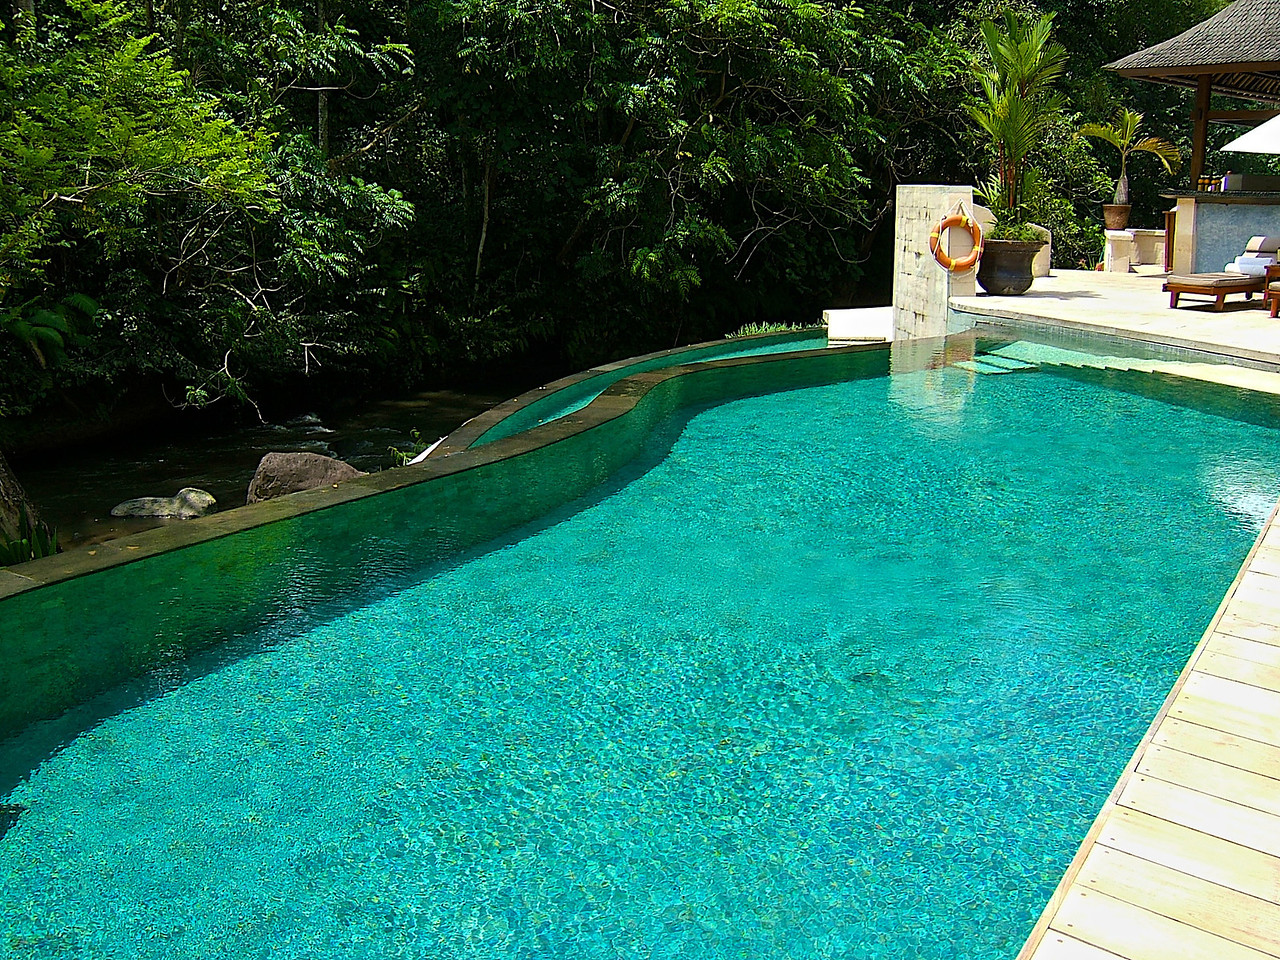 There are quiet pools as well as family pool areas.